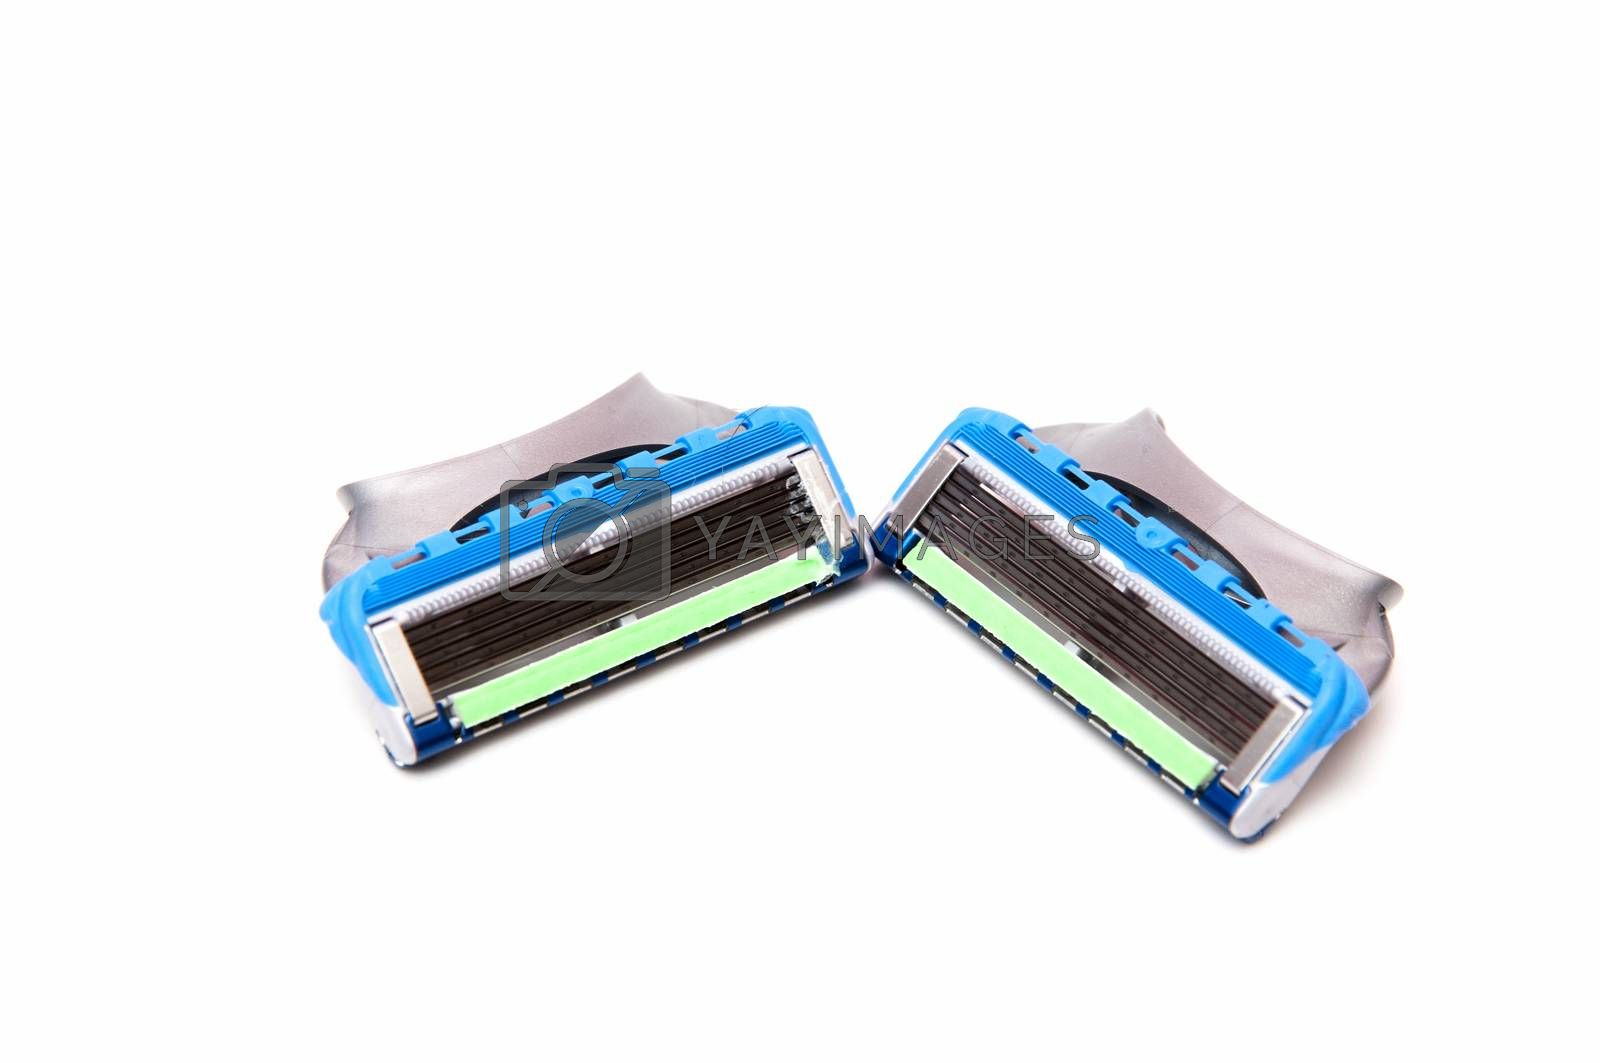 razor blue with many blades for better shaving